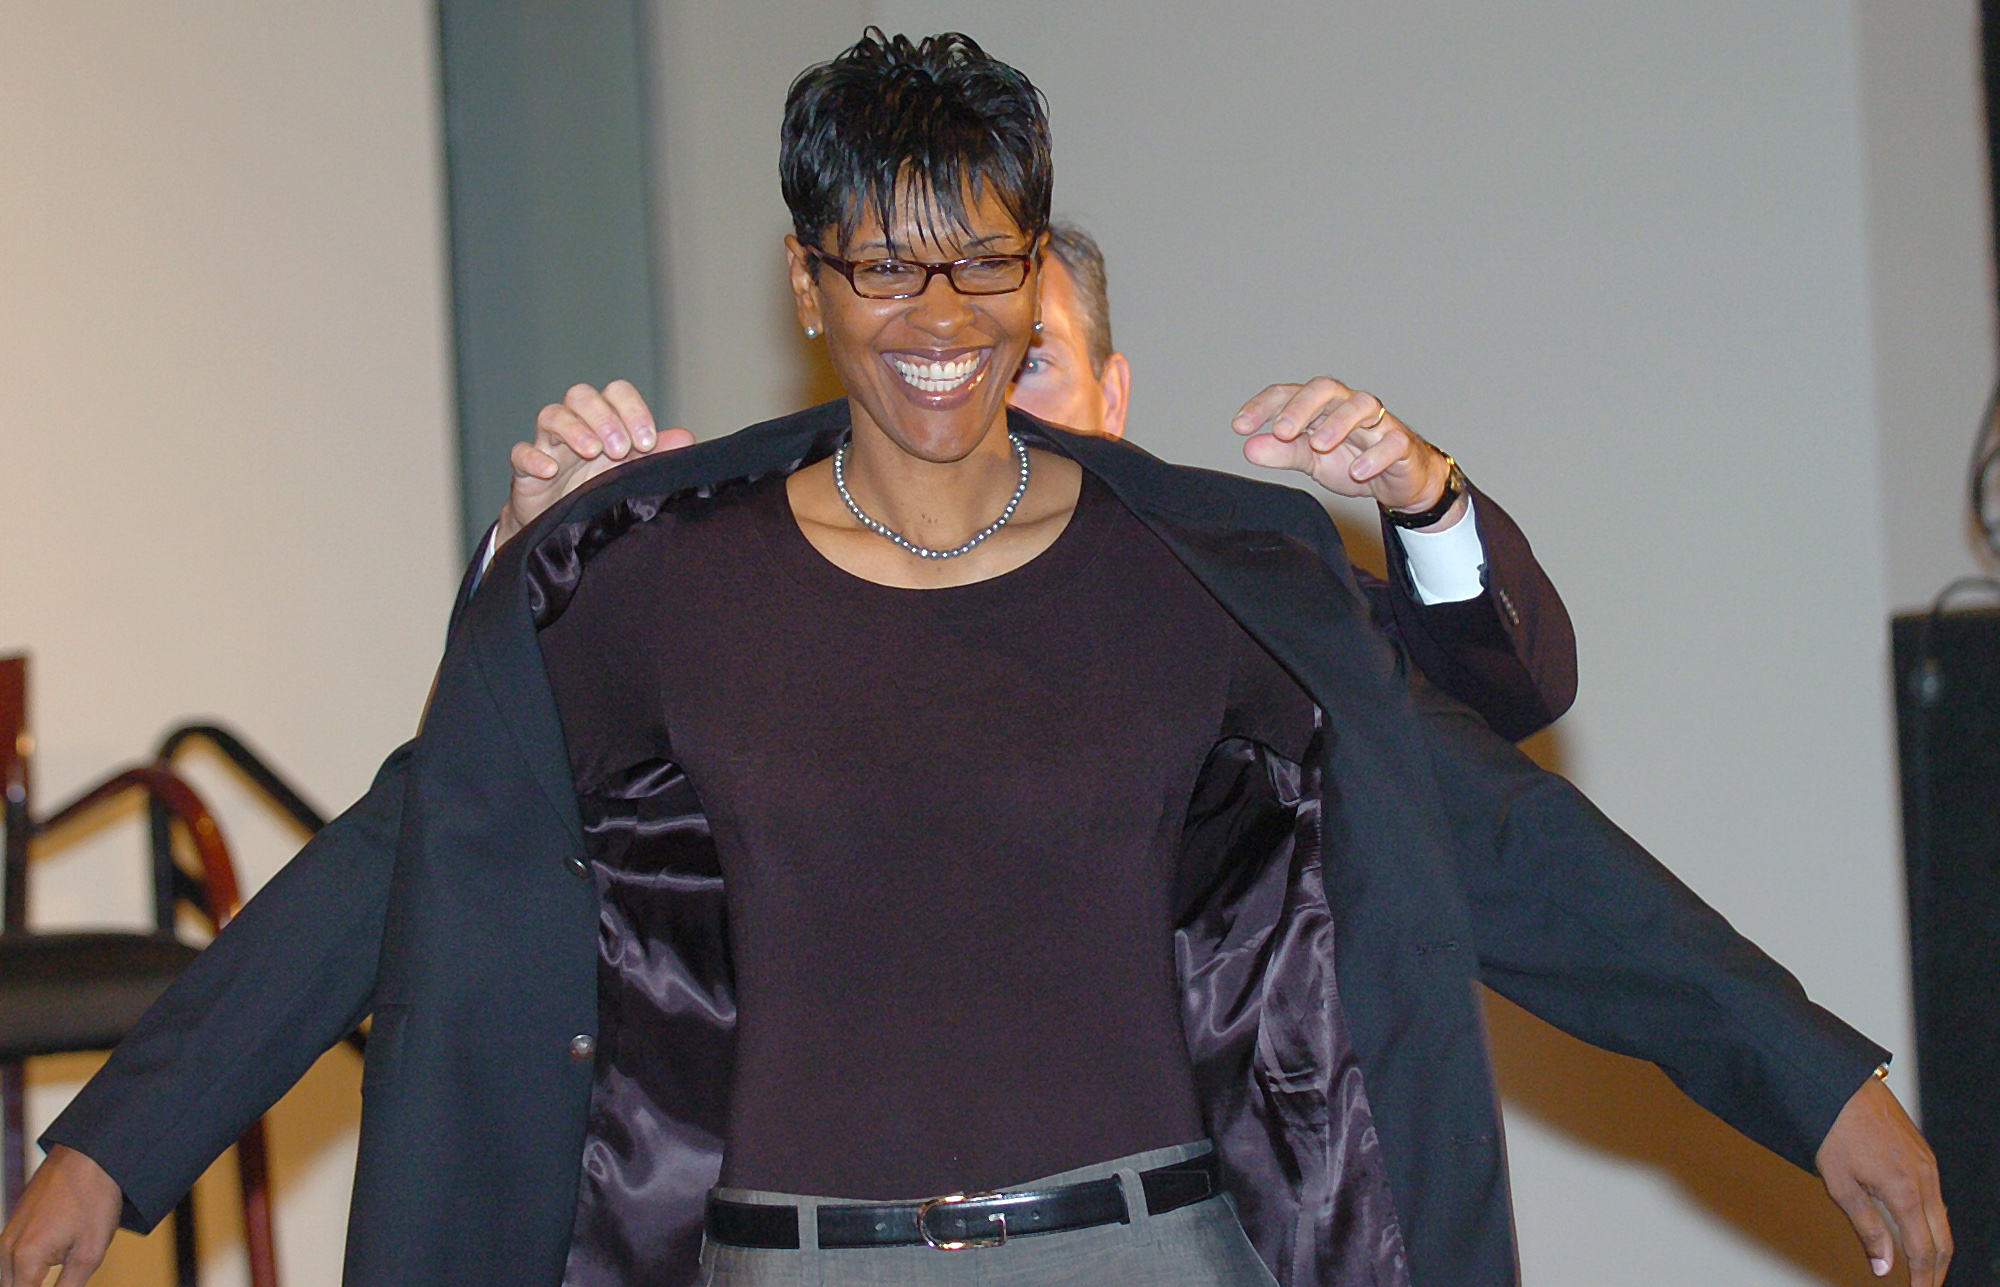 Lynette Woodard smiles as John L. Doleve, president and CEO of the Basketball Hall of Fame helps her put on her Hall of Fame jacket at a news conferernce at the Hall of Fame in Springfield, Mass., Friday, Sept. 10, 2004. Woodard is an Olympic gold medalis